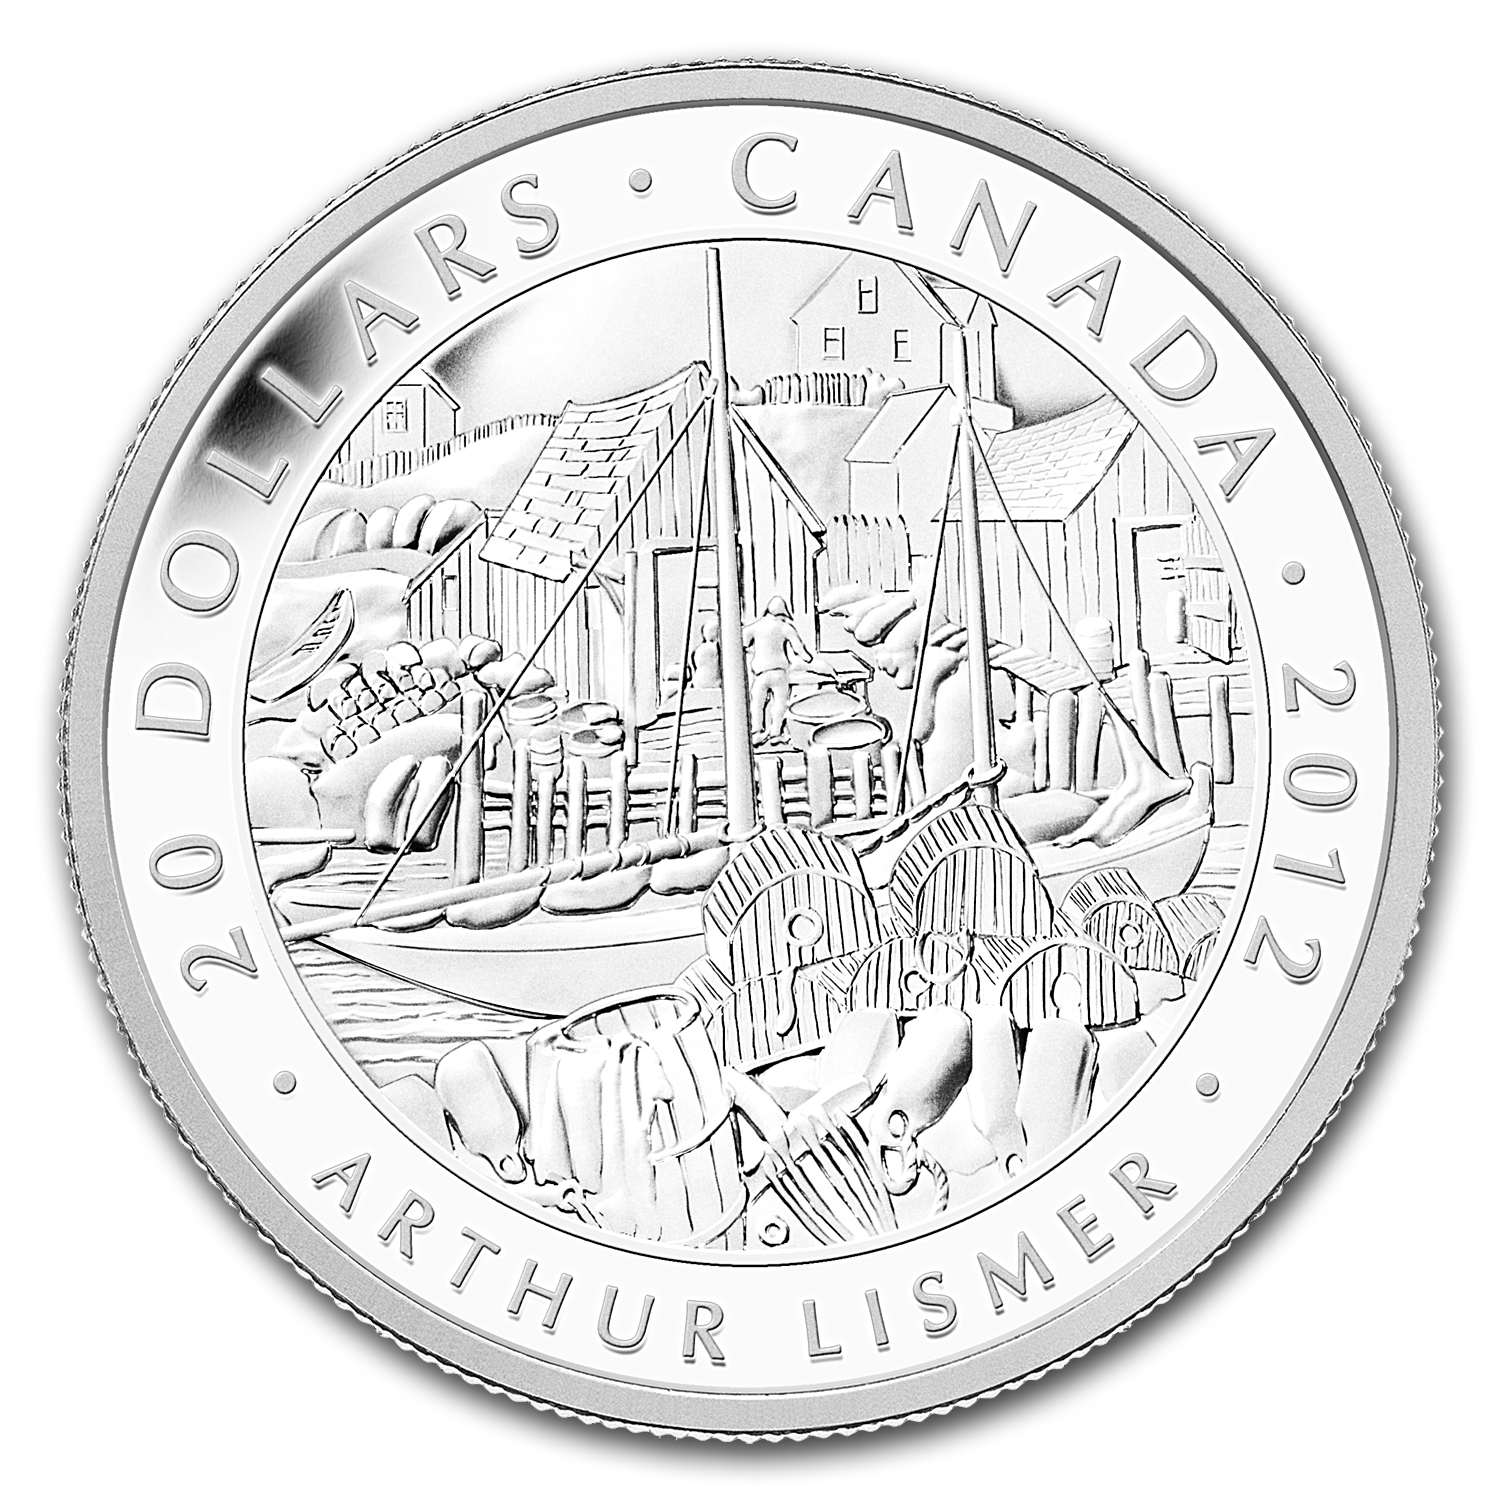 2012 1 oz Silver Canadian $20 Lismer, Nova Scotia Fishing Village